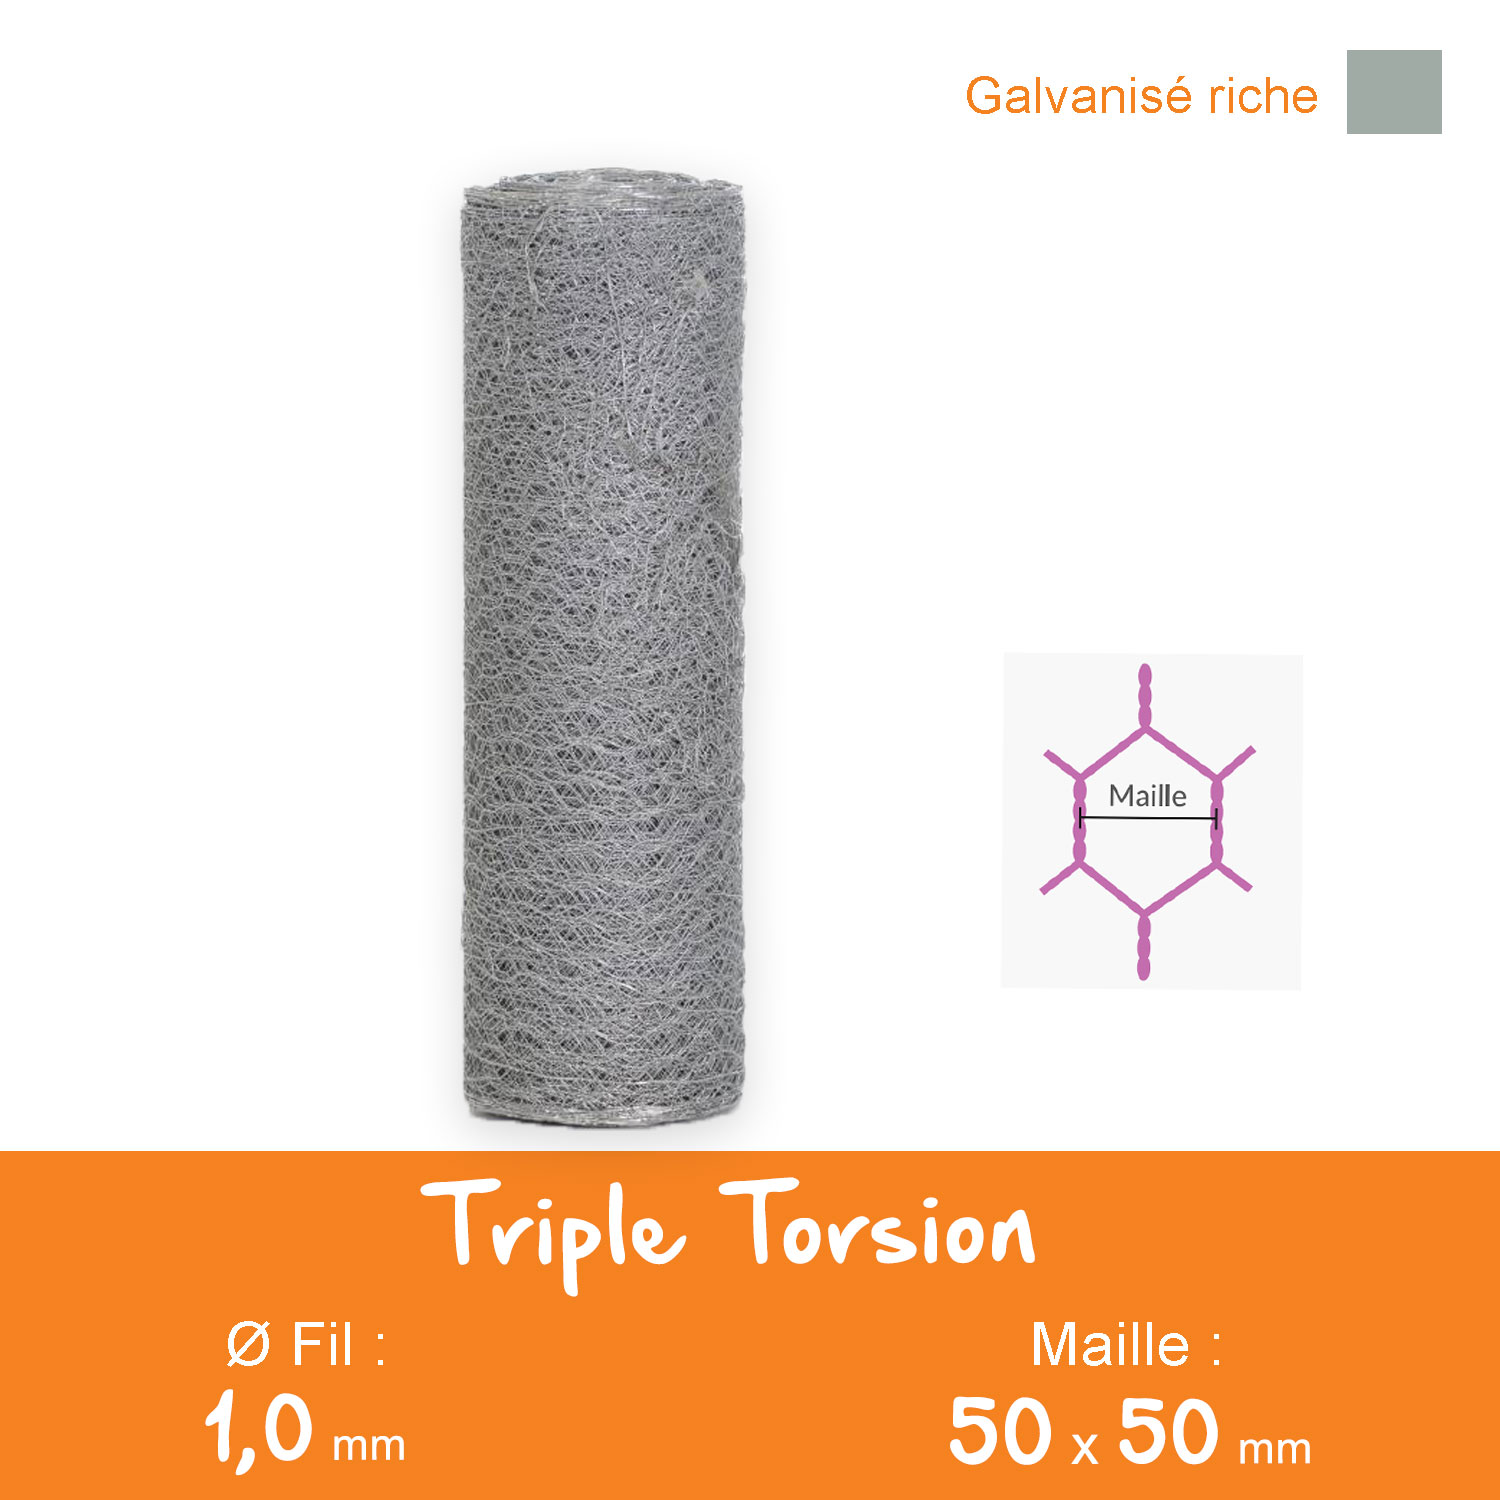 Triple Torsion Galvanisé - Maille 50 mm - Ø 1,0 mm - Lg. 50 ml